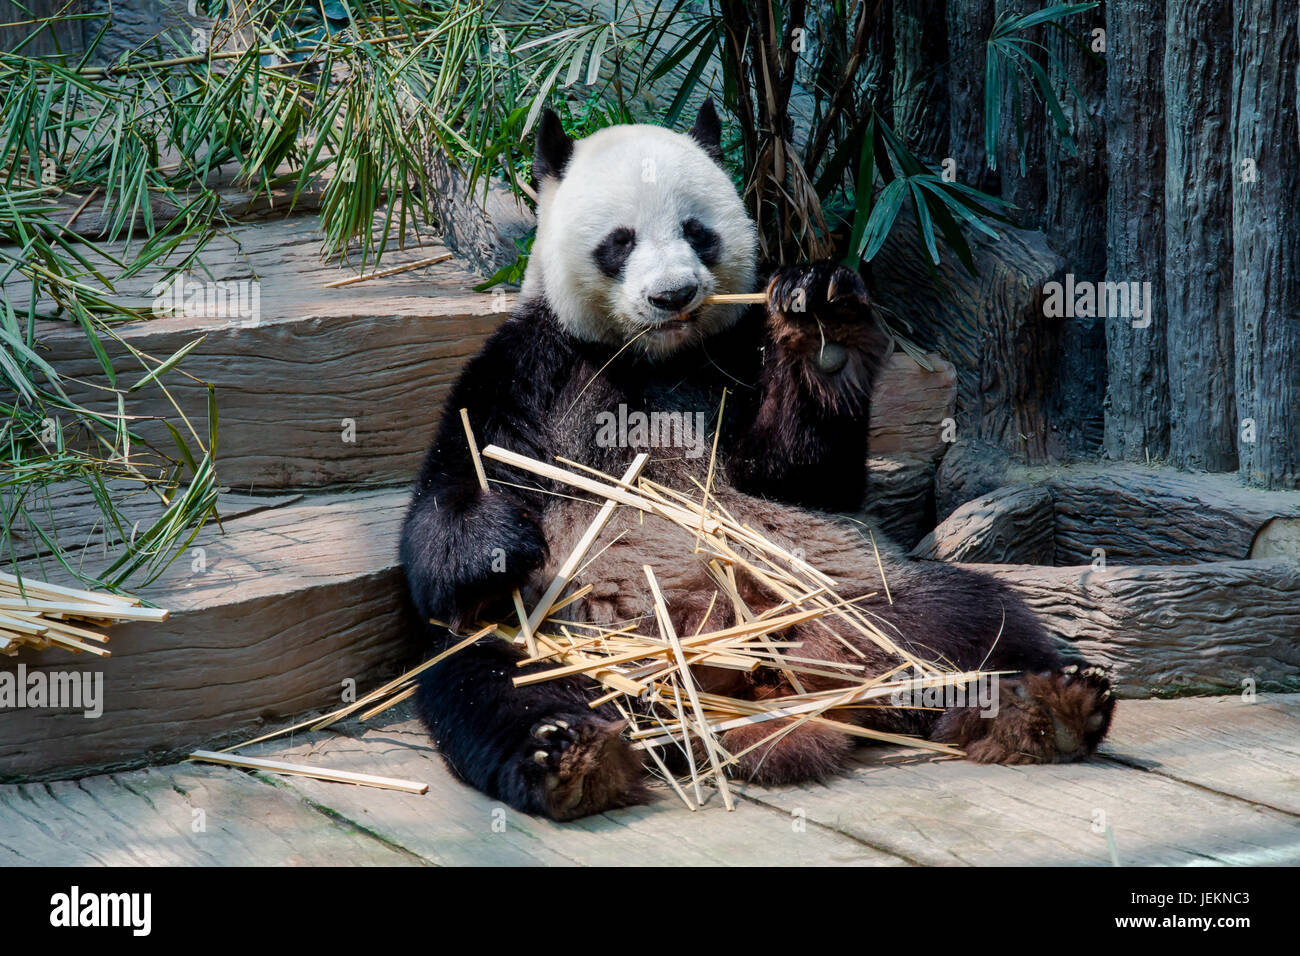 Panda enjoy eating bamboo sticks Stock Photo